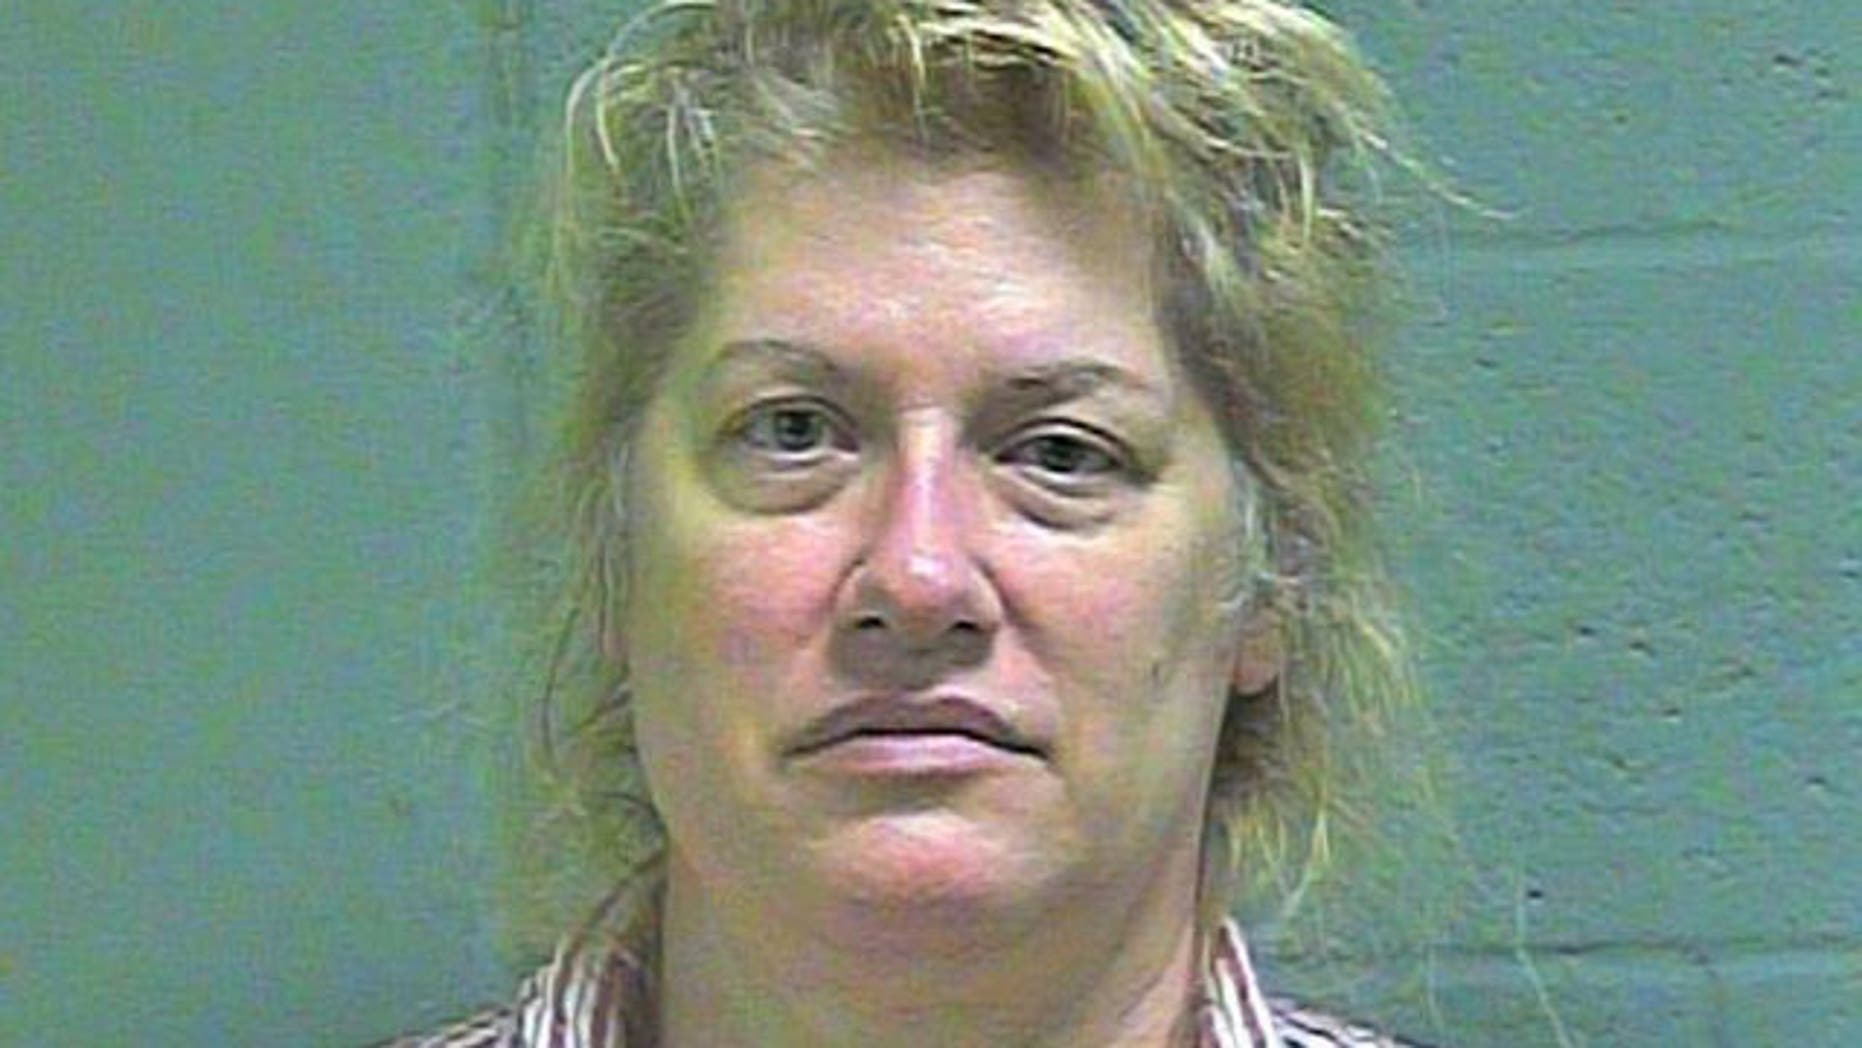 Regan Nichols, 57, was charged in the death of five patients.